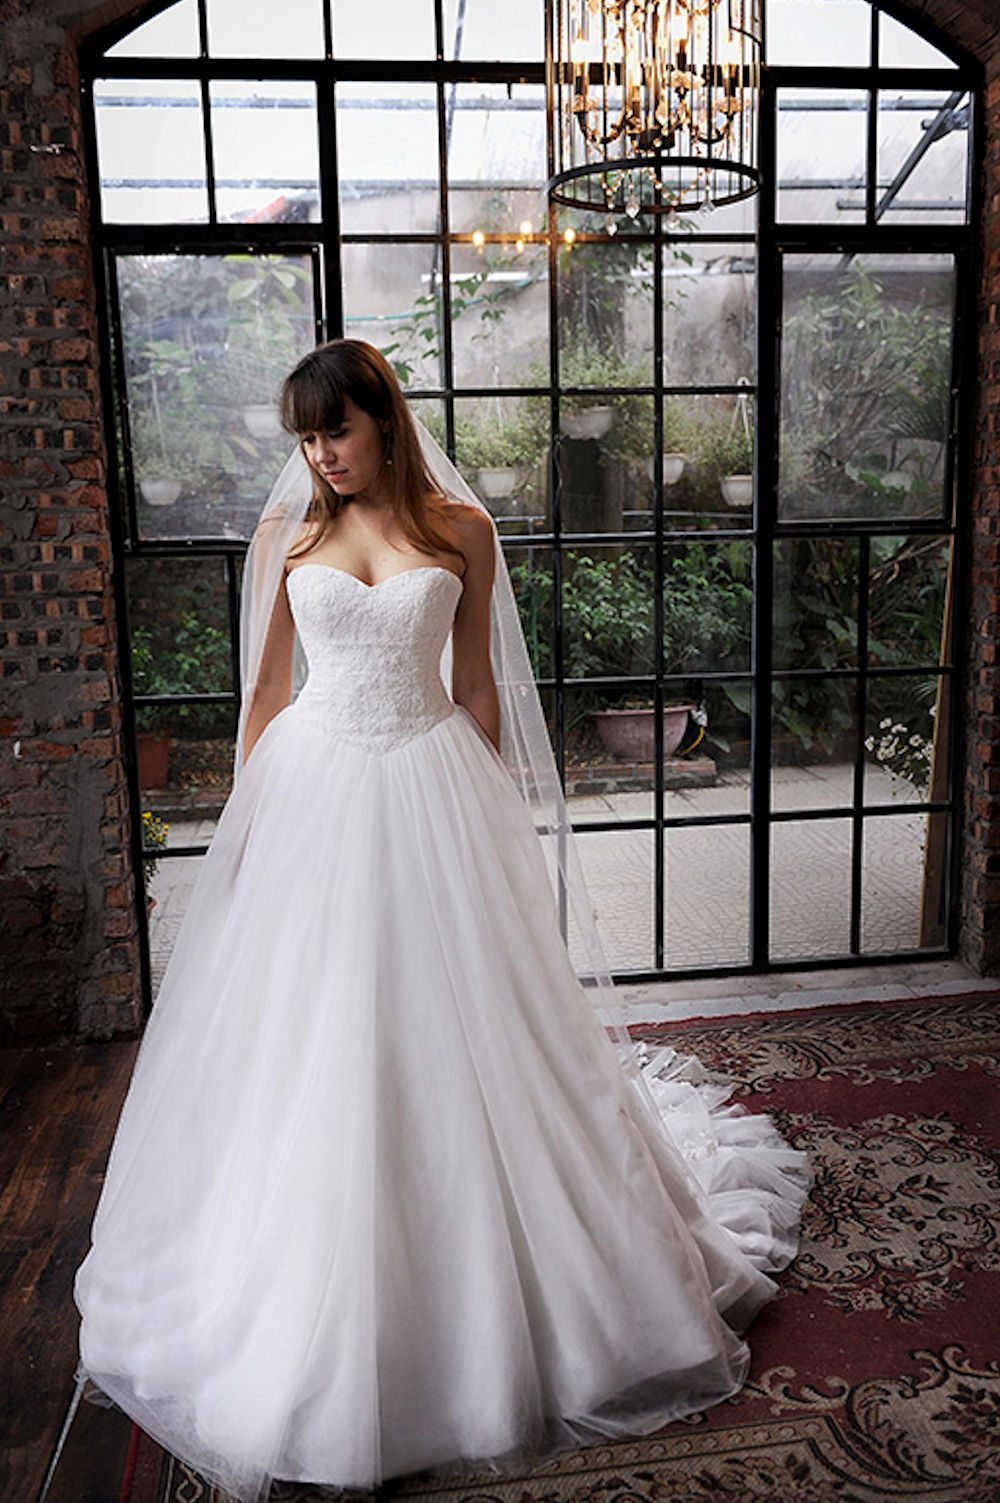 Kim Alpha Bridal - Bridal & Formal Dresses Melbourne - Erica Lace, Tulle & Silk Wedding Dress